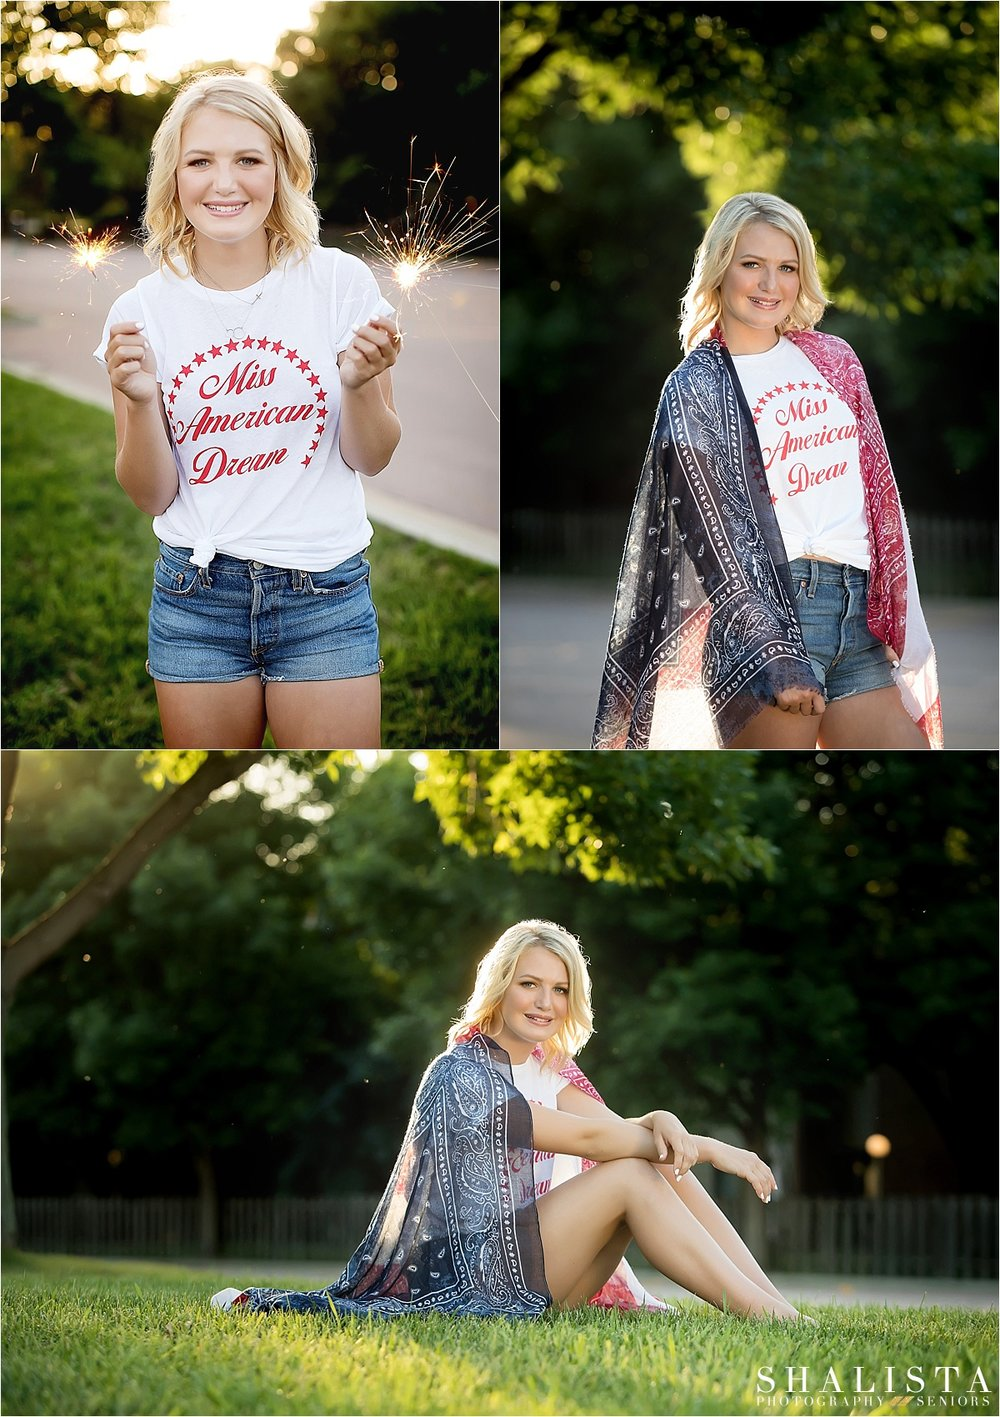 Forth of July Patriotic Theme | Shalista Seniors